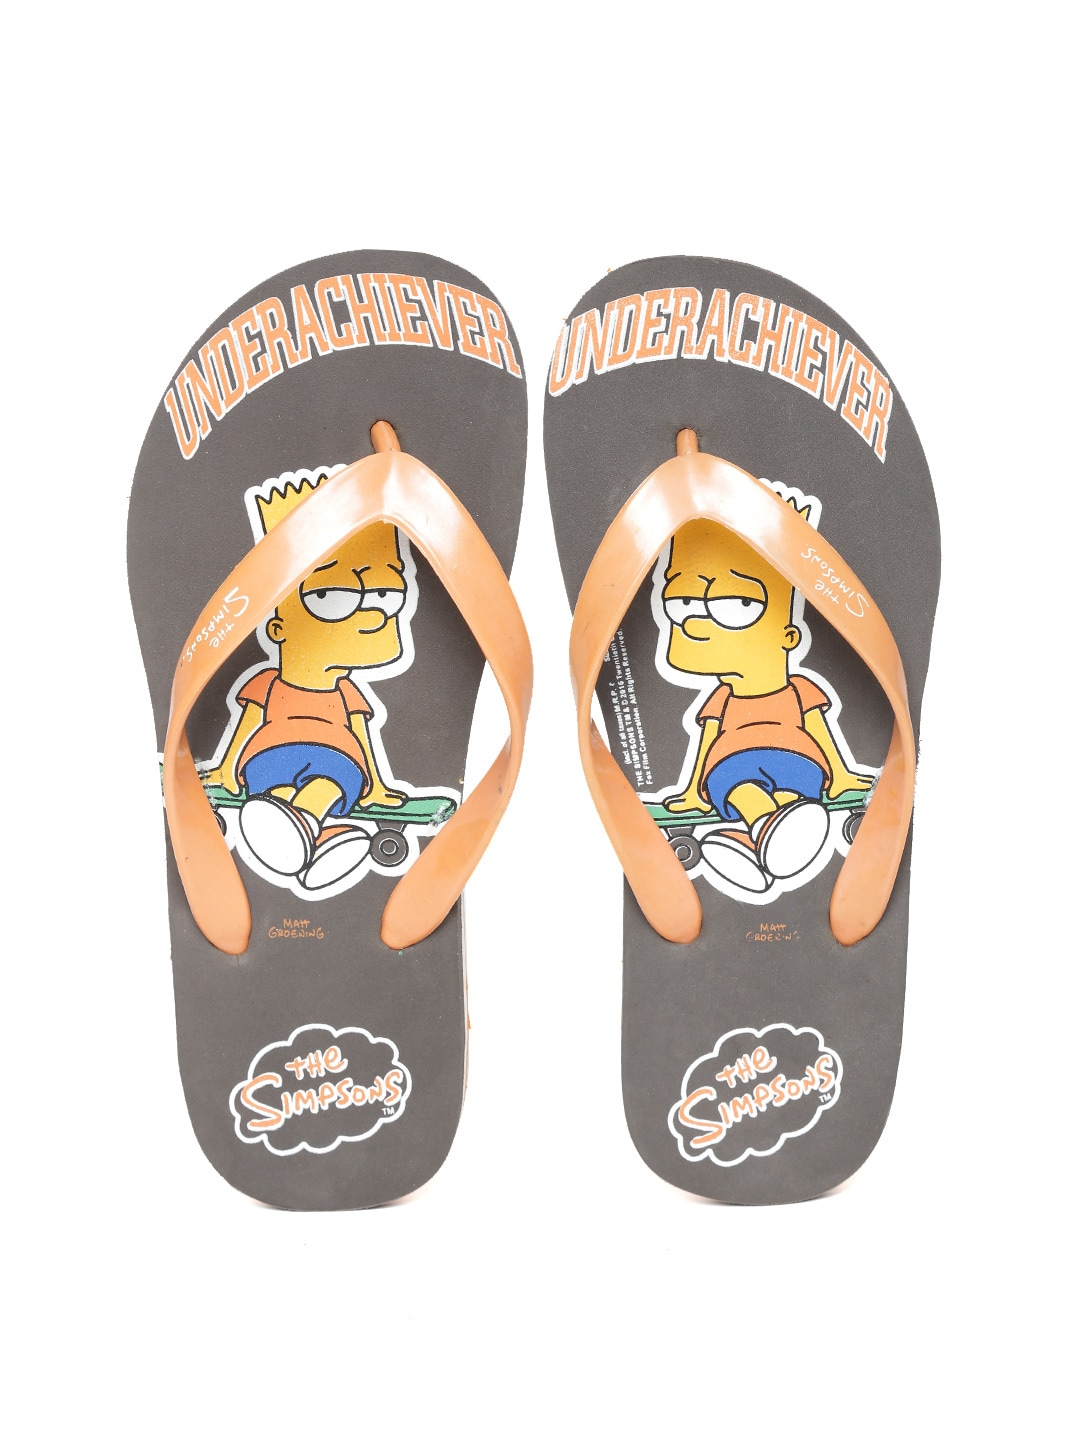 Kook N Keech Men Orange & Taupe The Simpsons Print Flip-Flops image